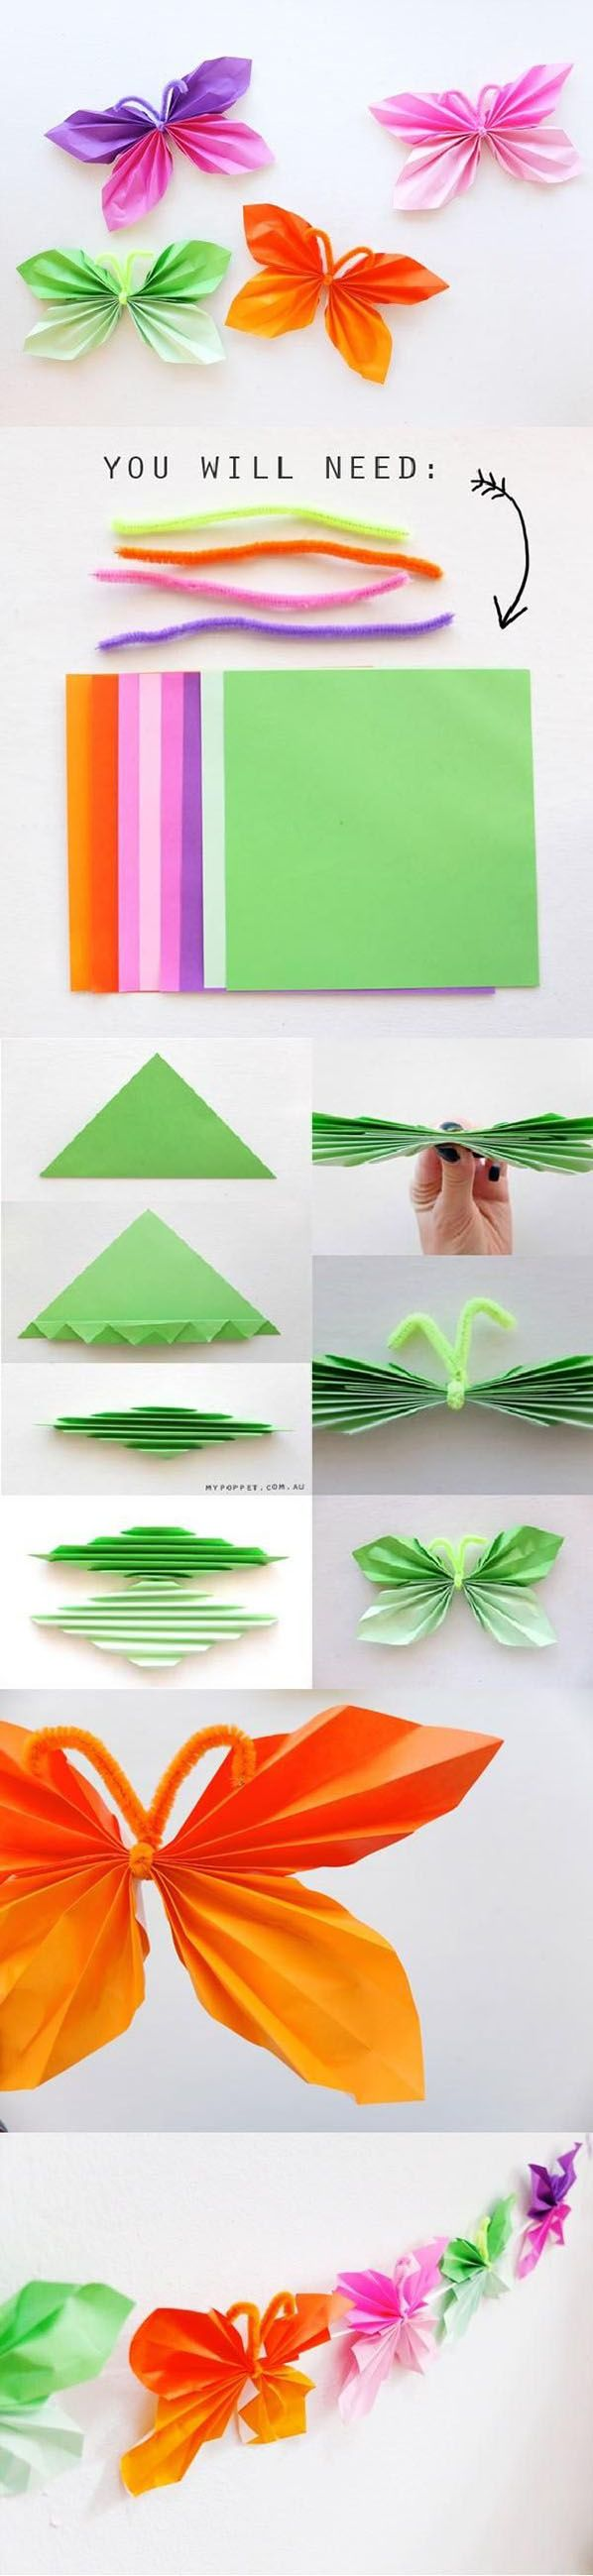 Diy Beautiful Butterfly | DIY & Crafts Tutorials